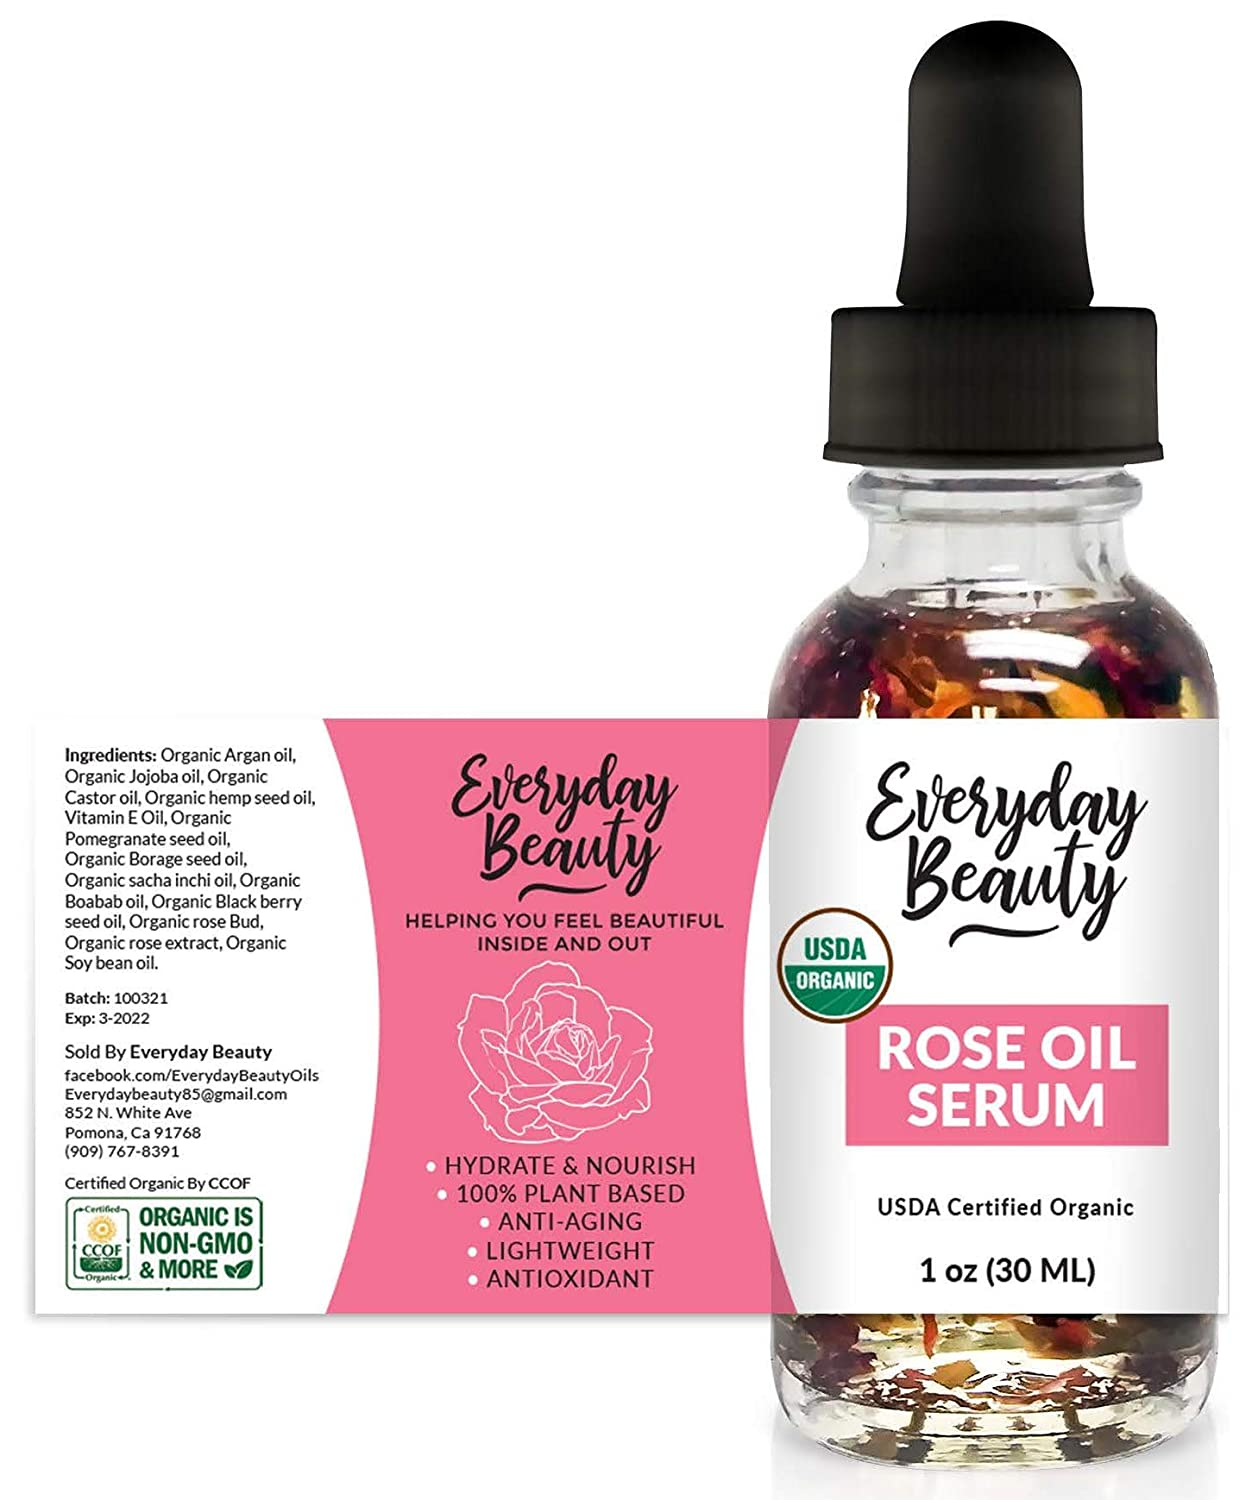 Rose Oil Serum - USDA Certified Organic Hydrating Facial Serum - One of a Kind Heavenly Rose Scented All Natural 100% Plant Based Botanical Beauty Face Oil - 1oz